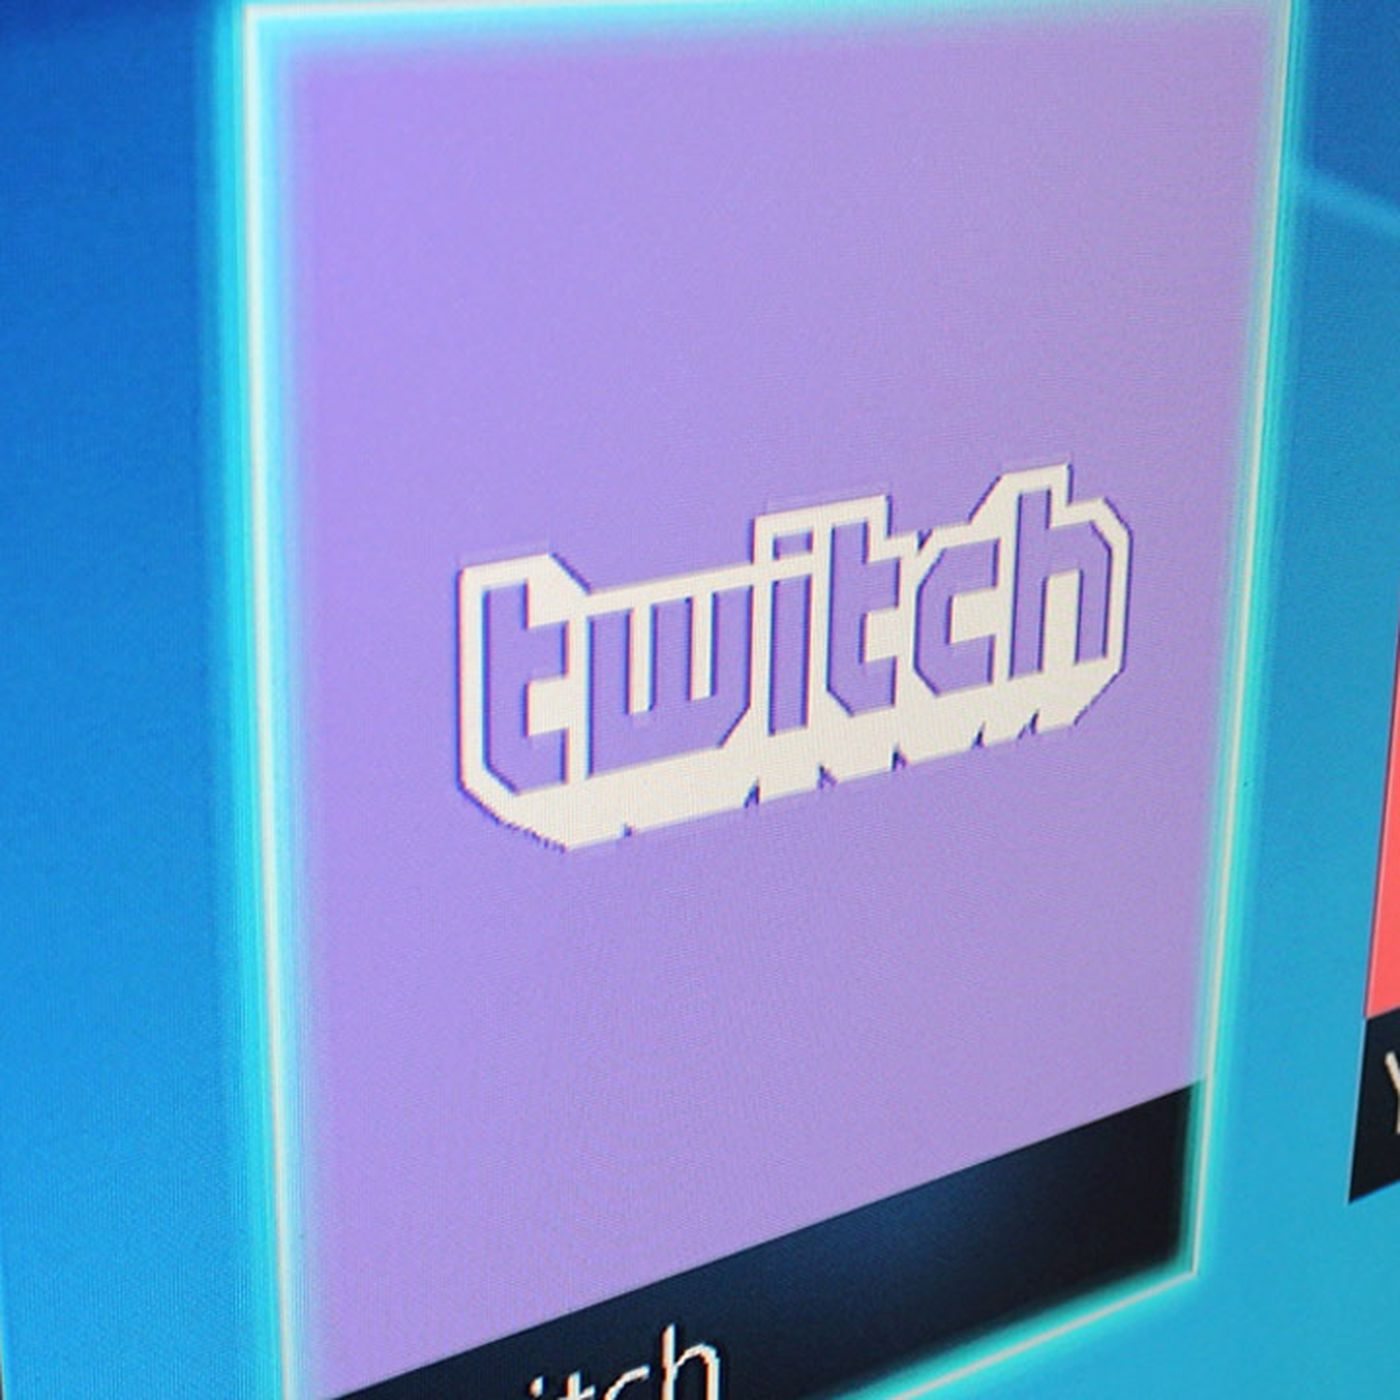 How to stream on Twitch and YouTube: Gear, apps and more